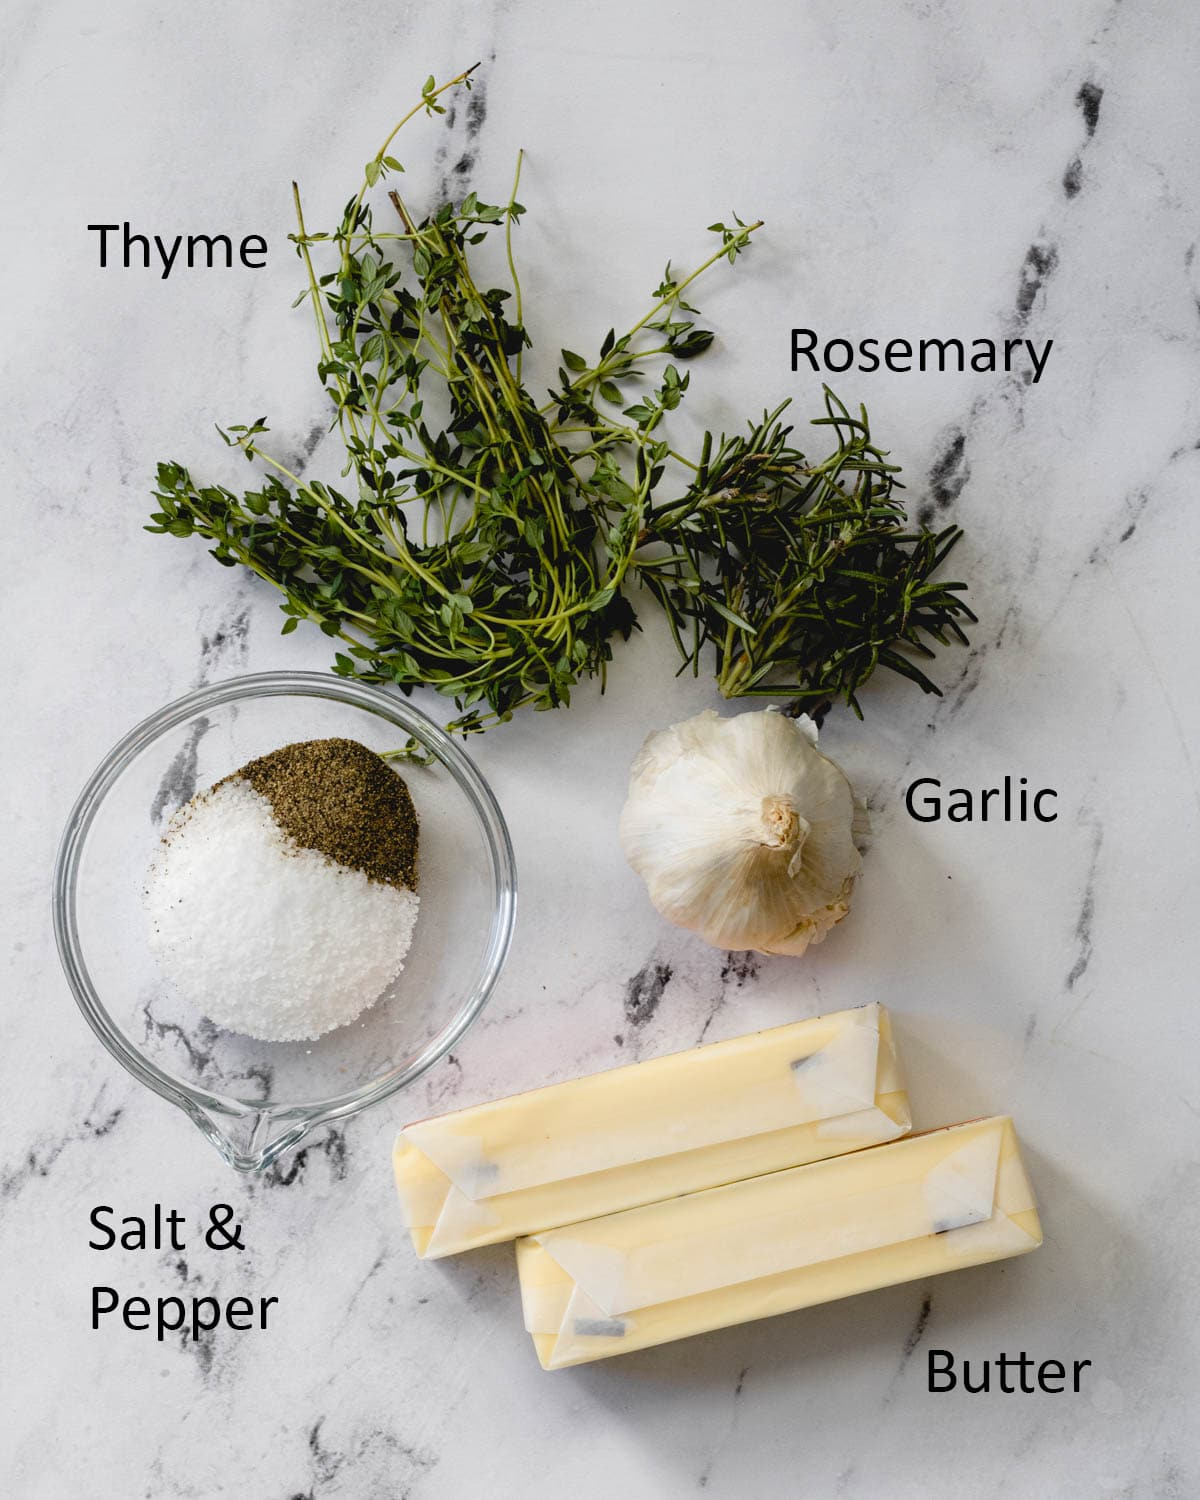 Garlic herb butter ingredients are pictured, including thyme, rosemary, garlic, salt, pepper, and butter.